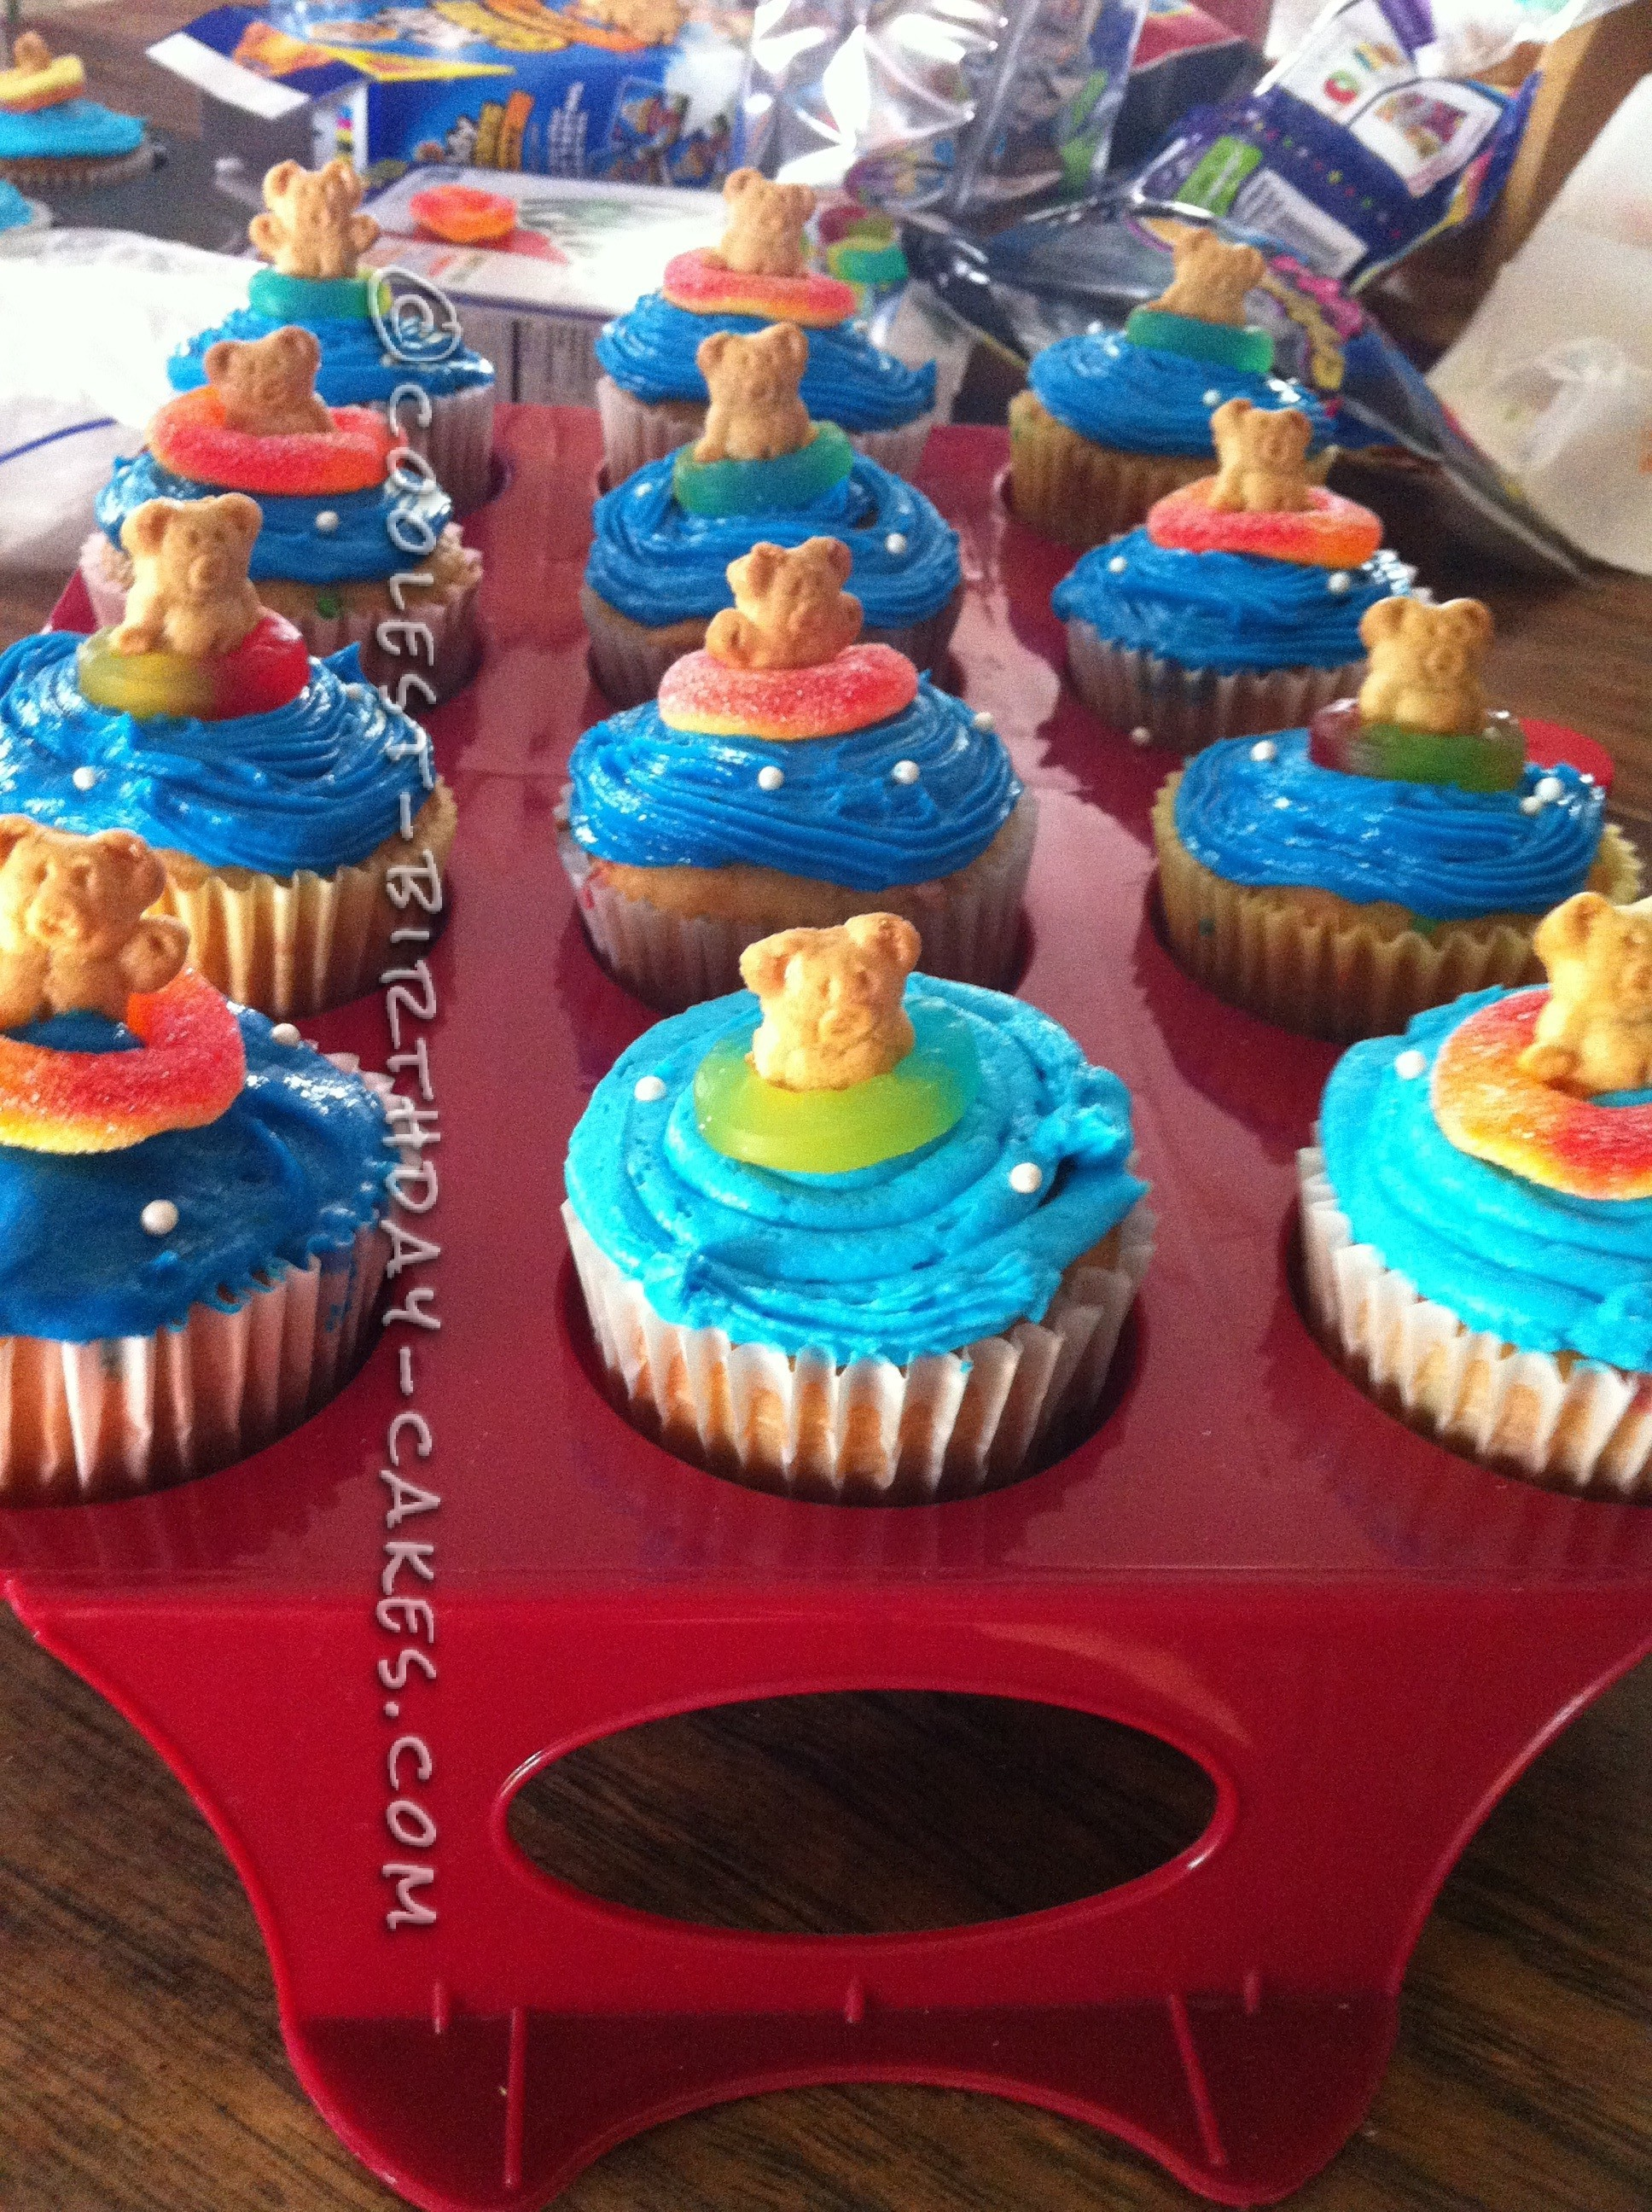 All the cupcakes had swimmers in ring floats